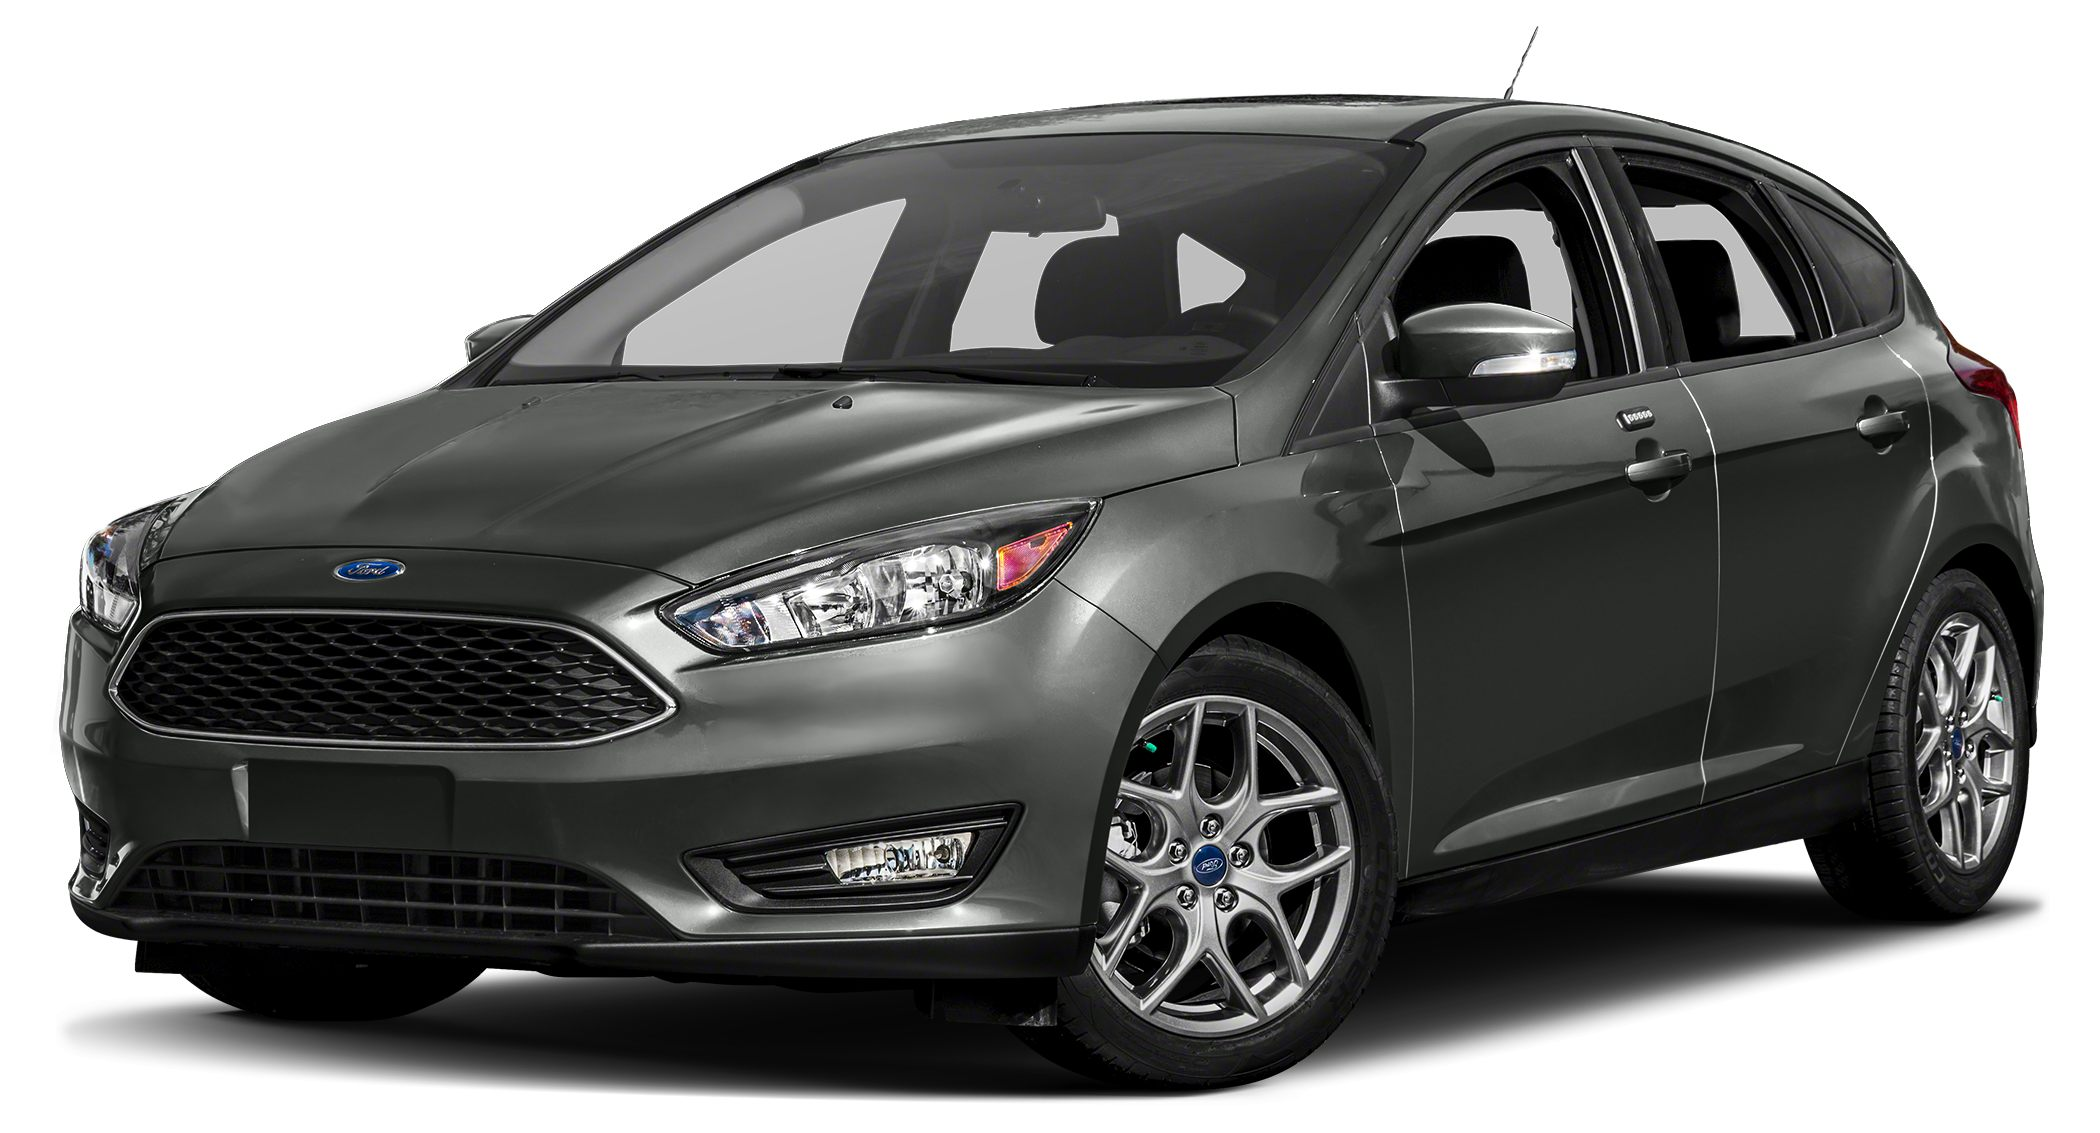 Buy A Ford Focus Grey Ford Focus For Sale Used Cars On Buysellsearch